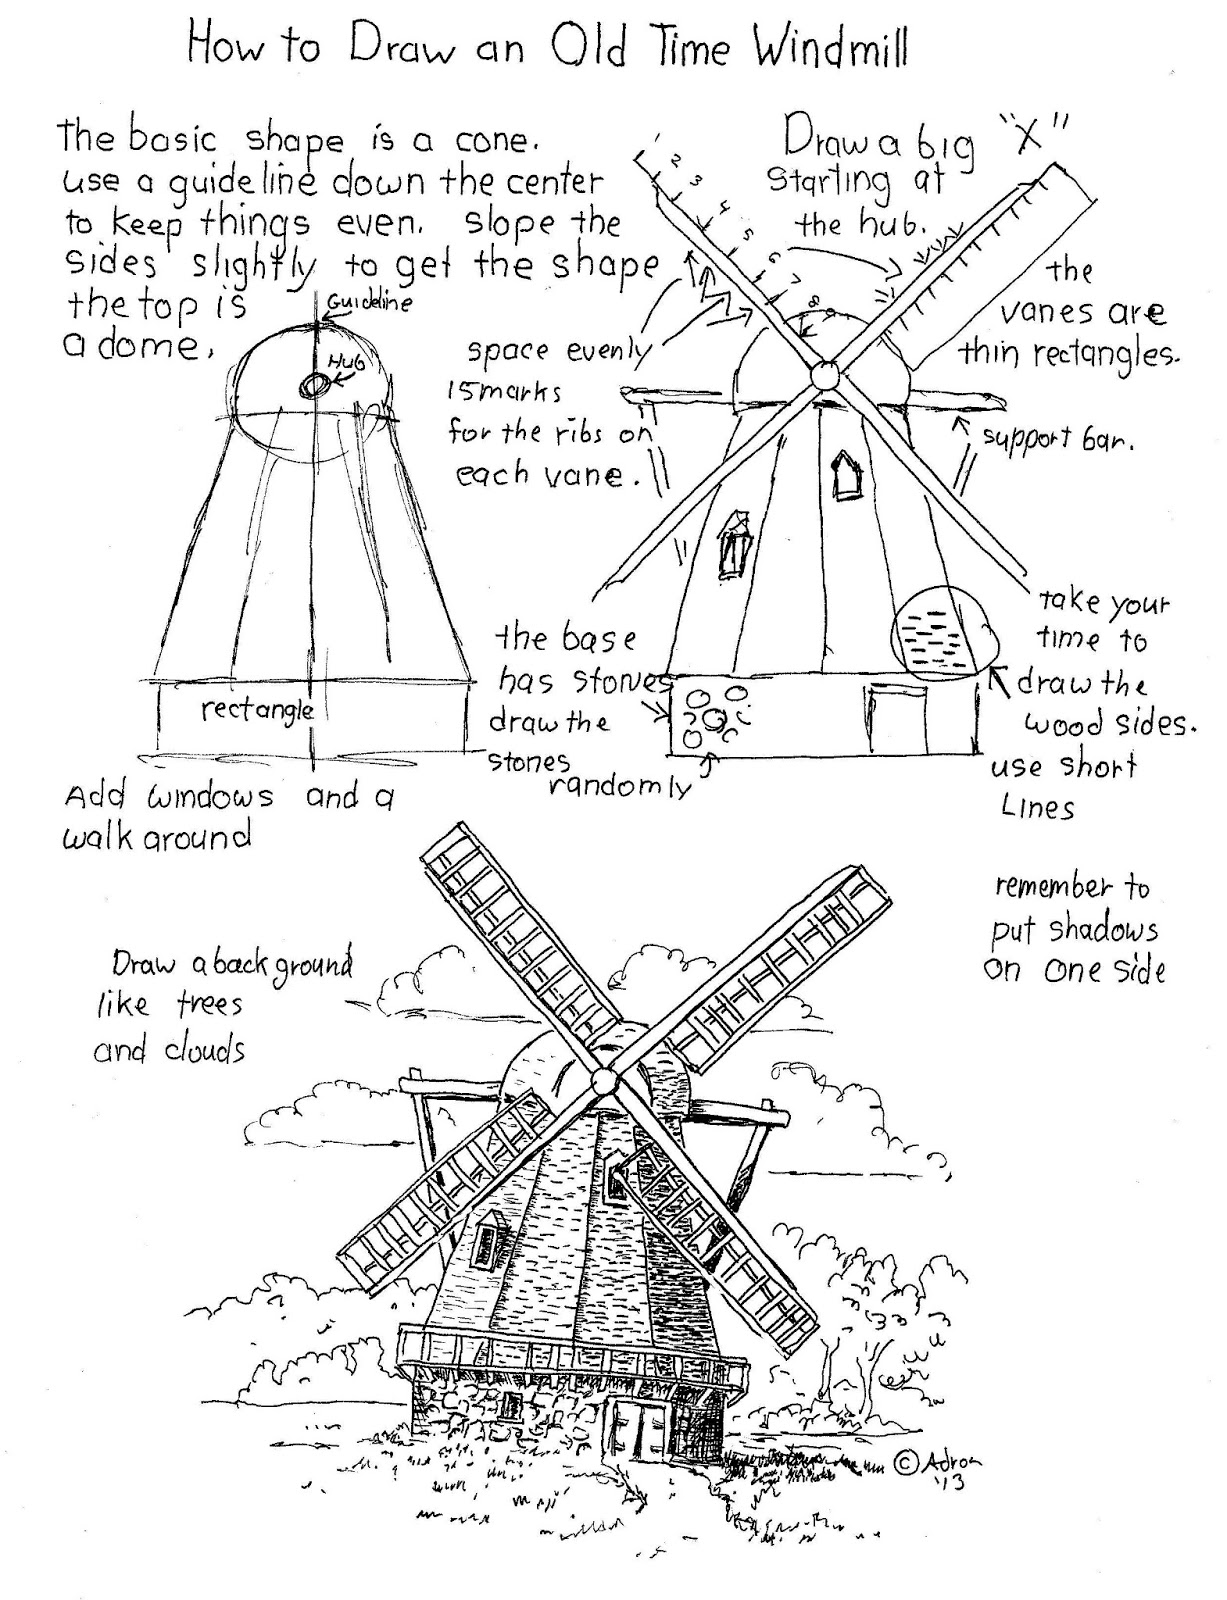 Drawn windmill old Draw to How Artist: Draw